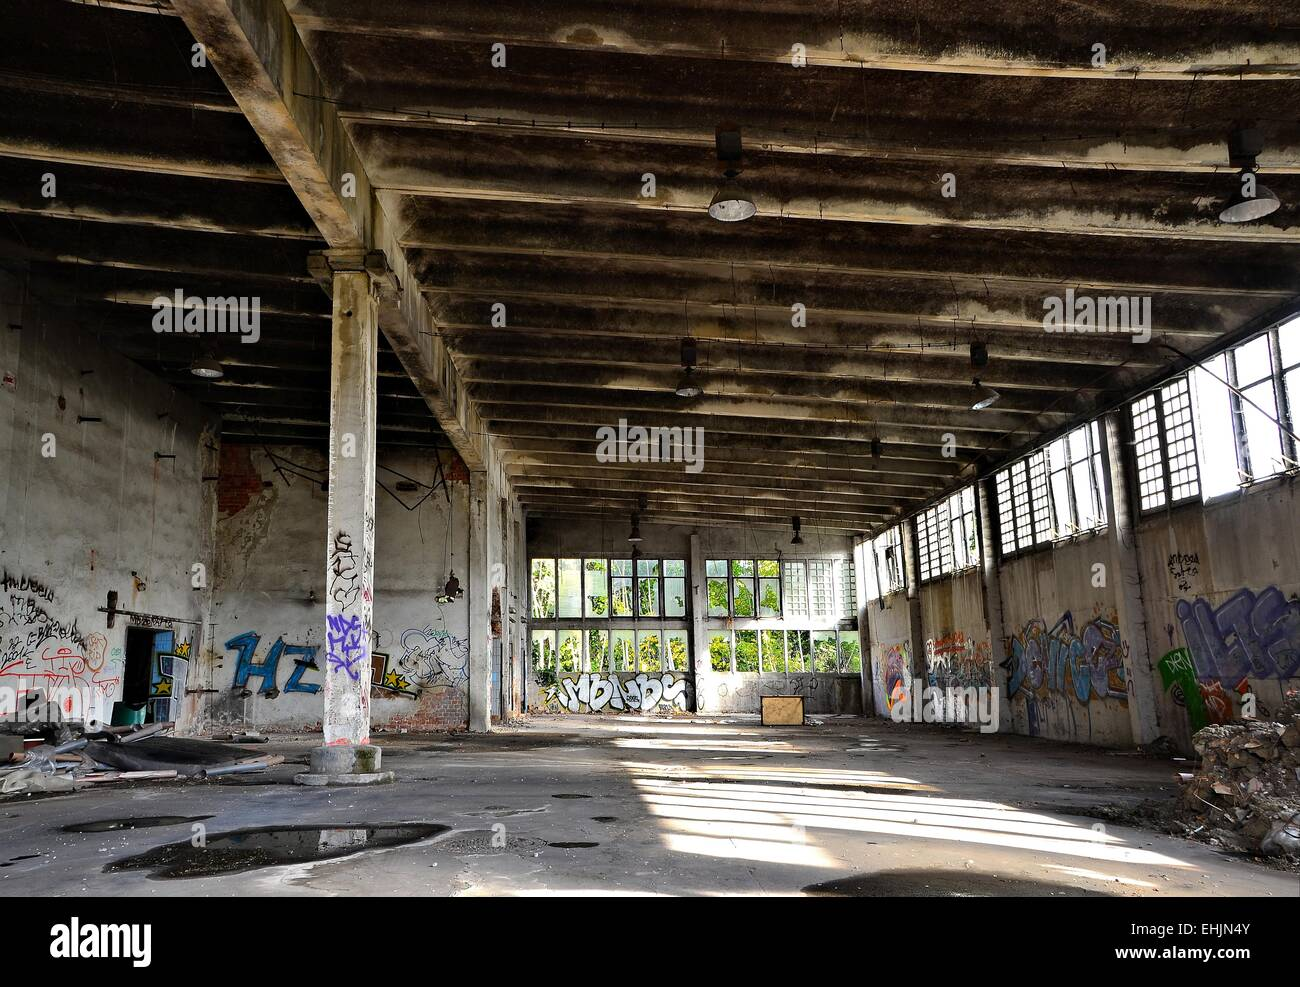 Derelict and abandoned Stock Photo